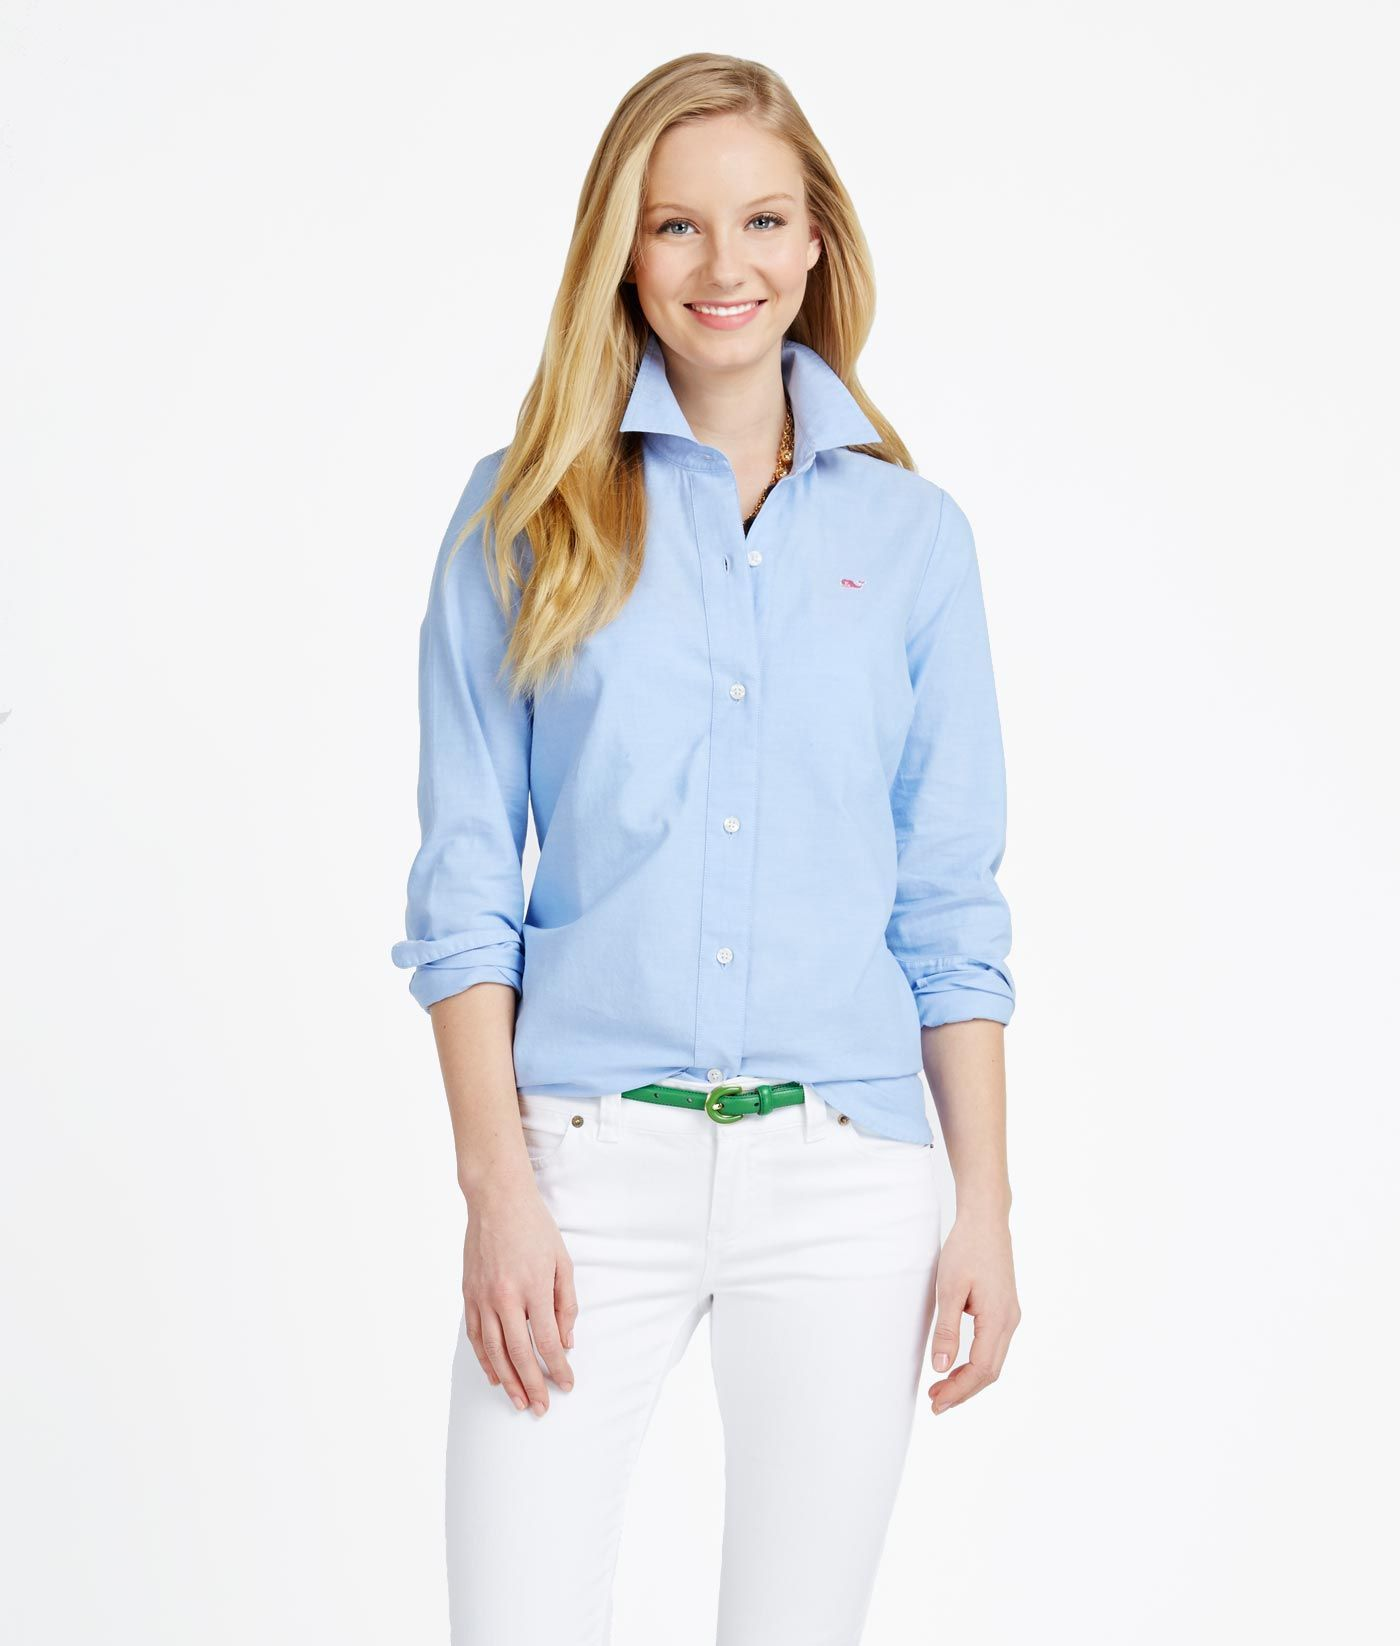 651ed082 Women's Button Down Shirts: Oxford Shirt for Women– Vineyard Vines ...